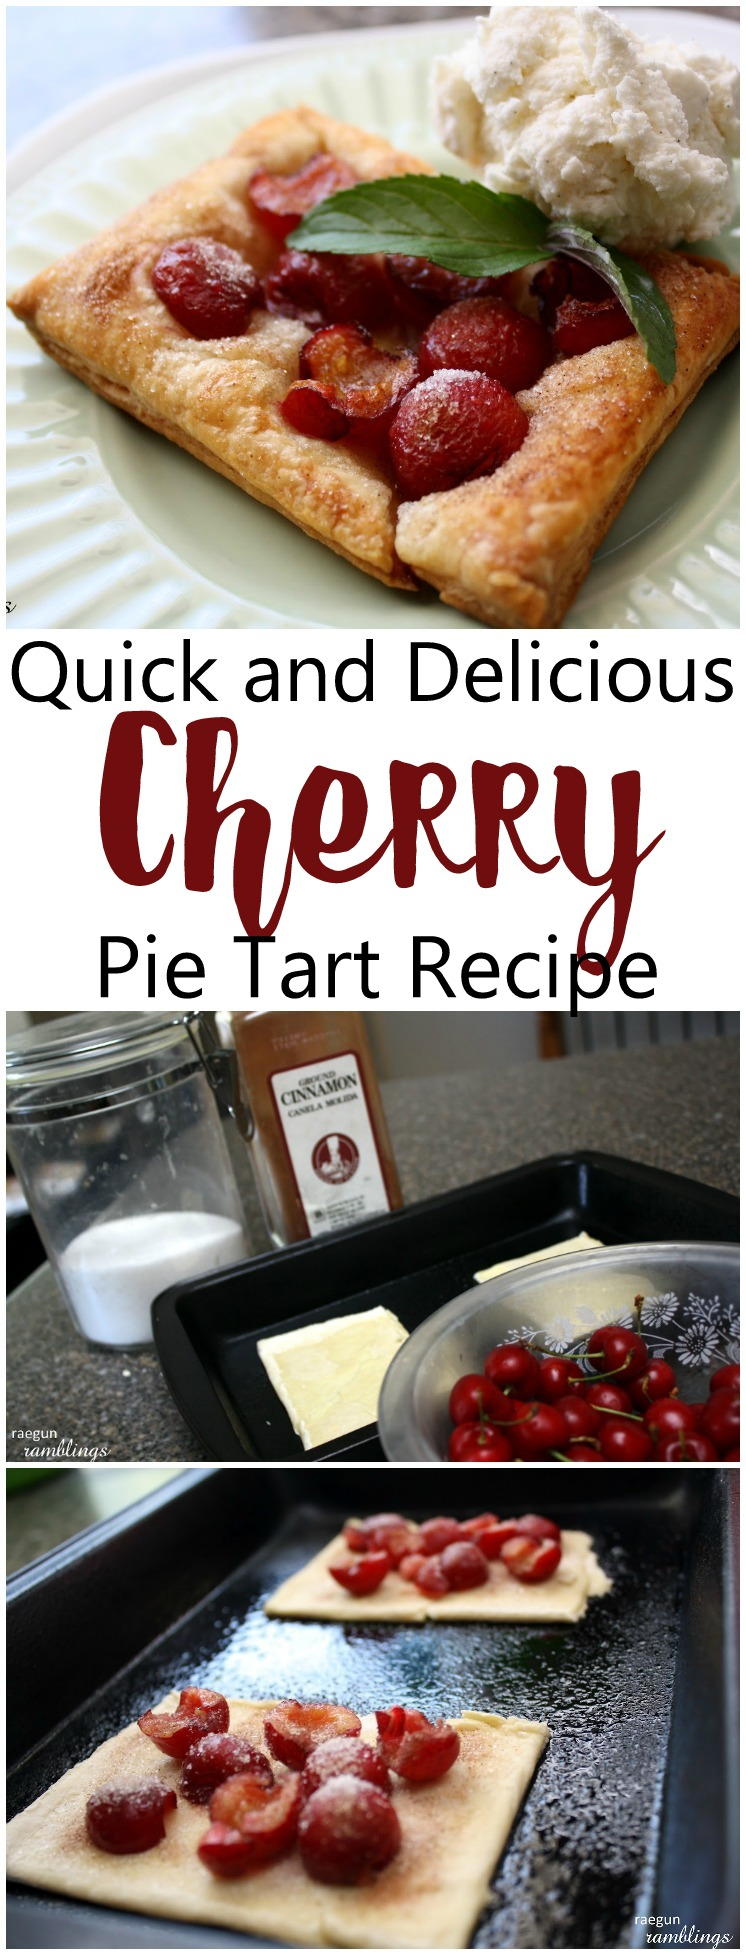 New go to dessert and snack. This cherry pie tart recipe is fantastic and happens to be naturally vegan.